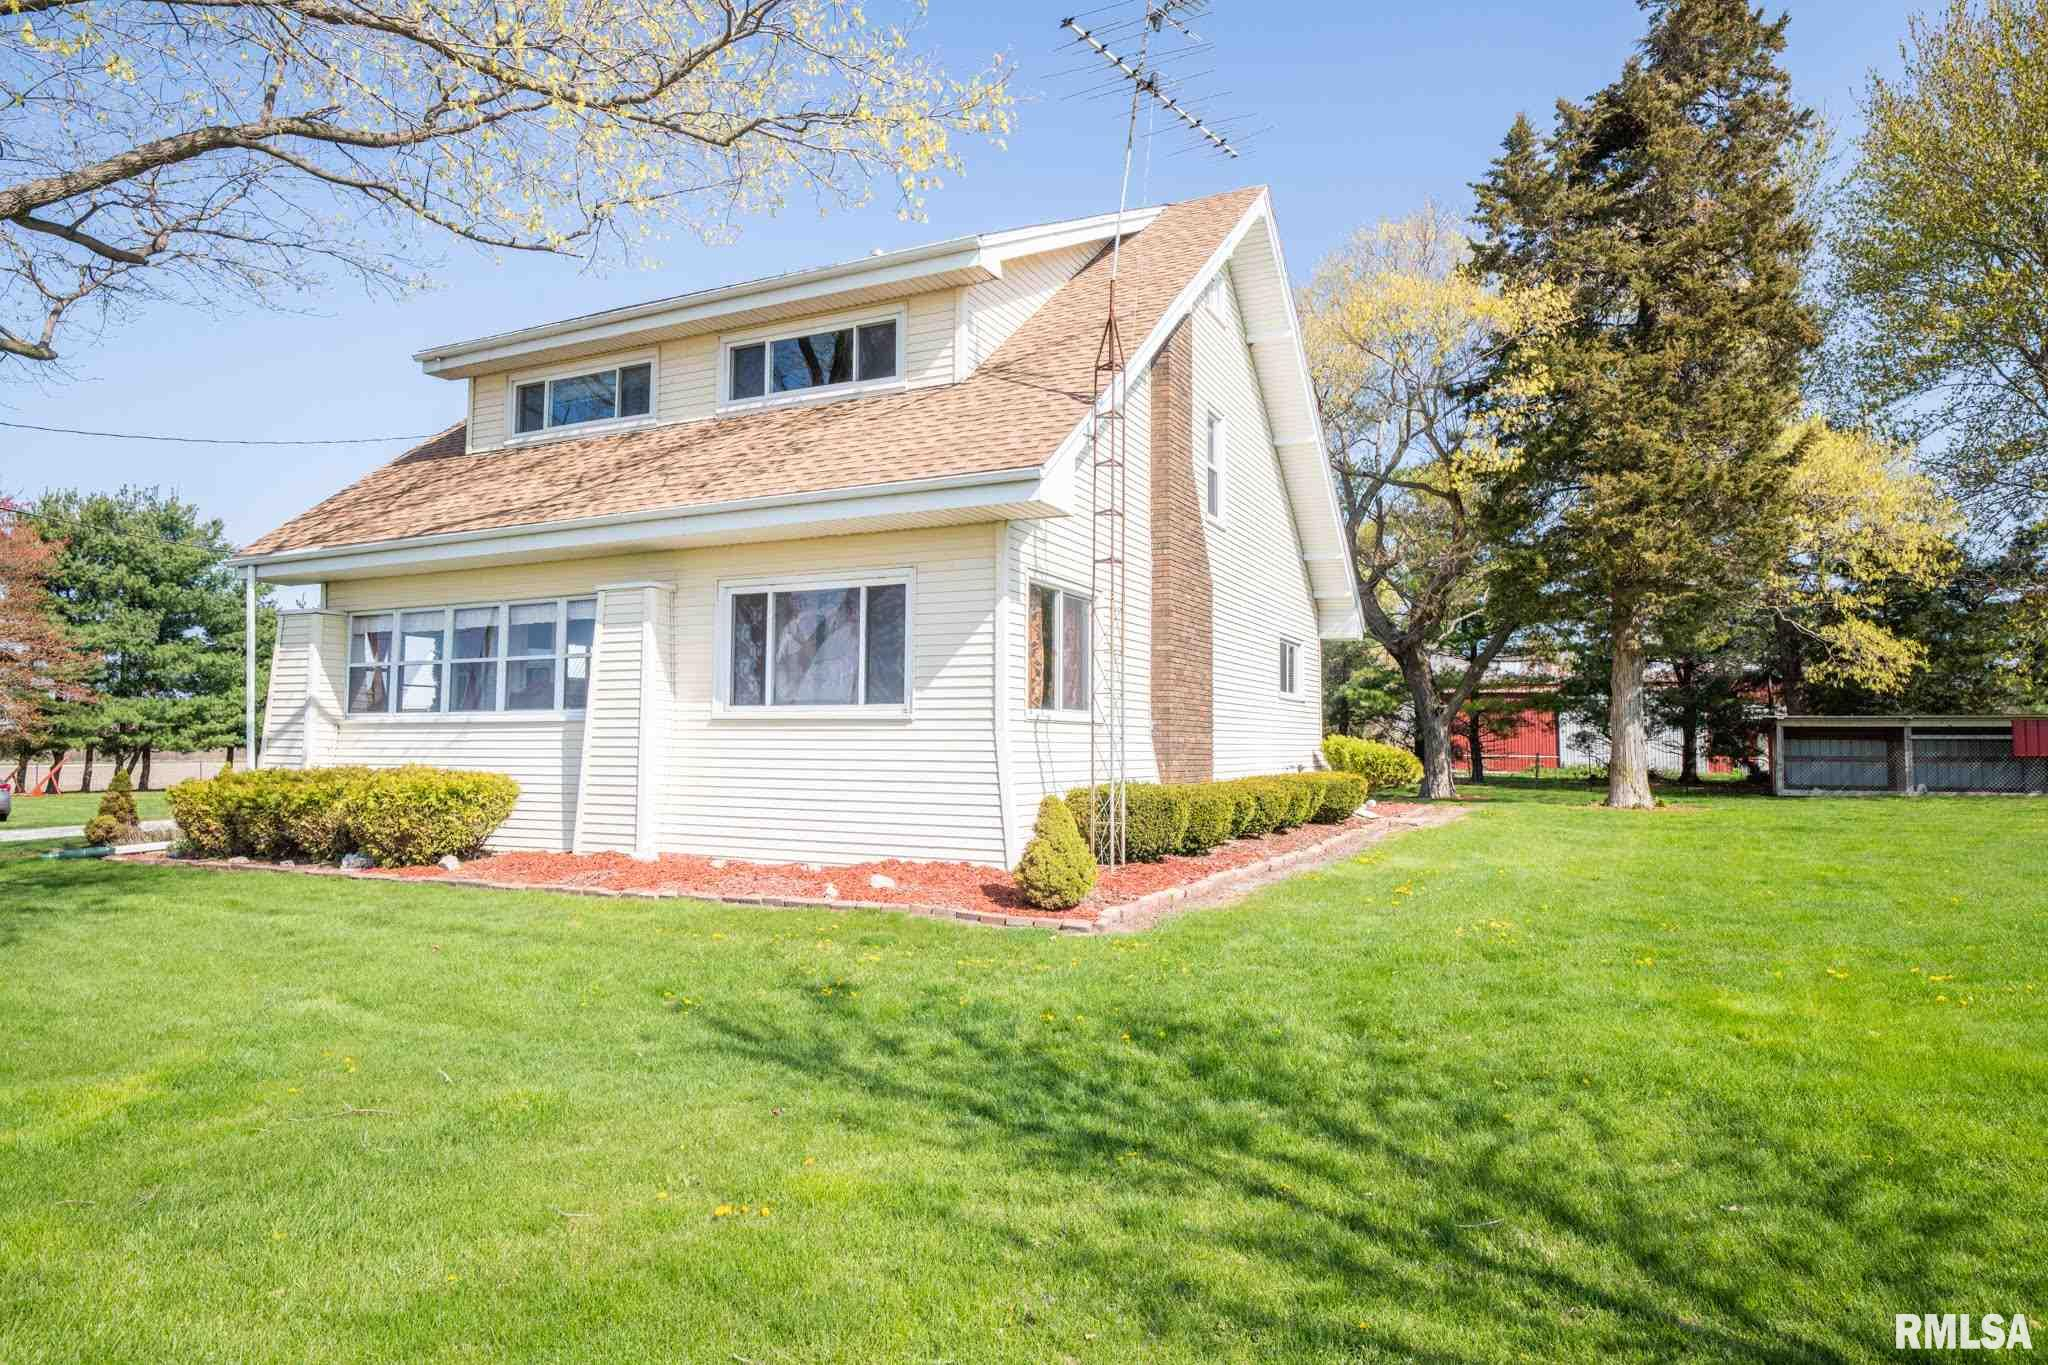 15632 E IL HWY 116 Property Photo - Fairview, IL real estate listing